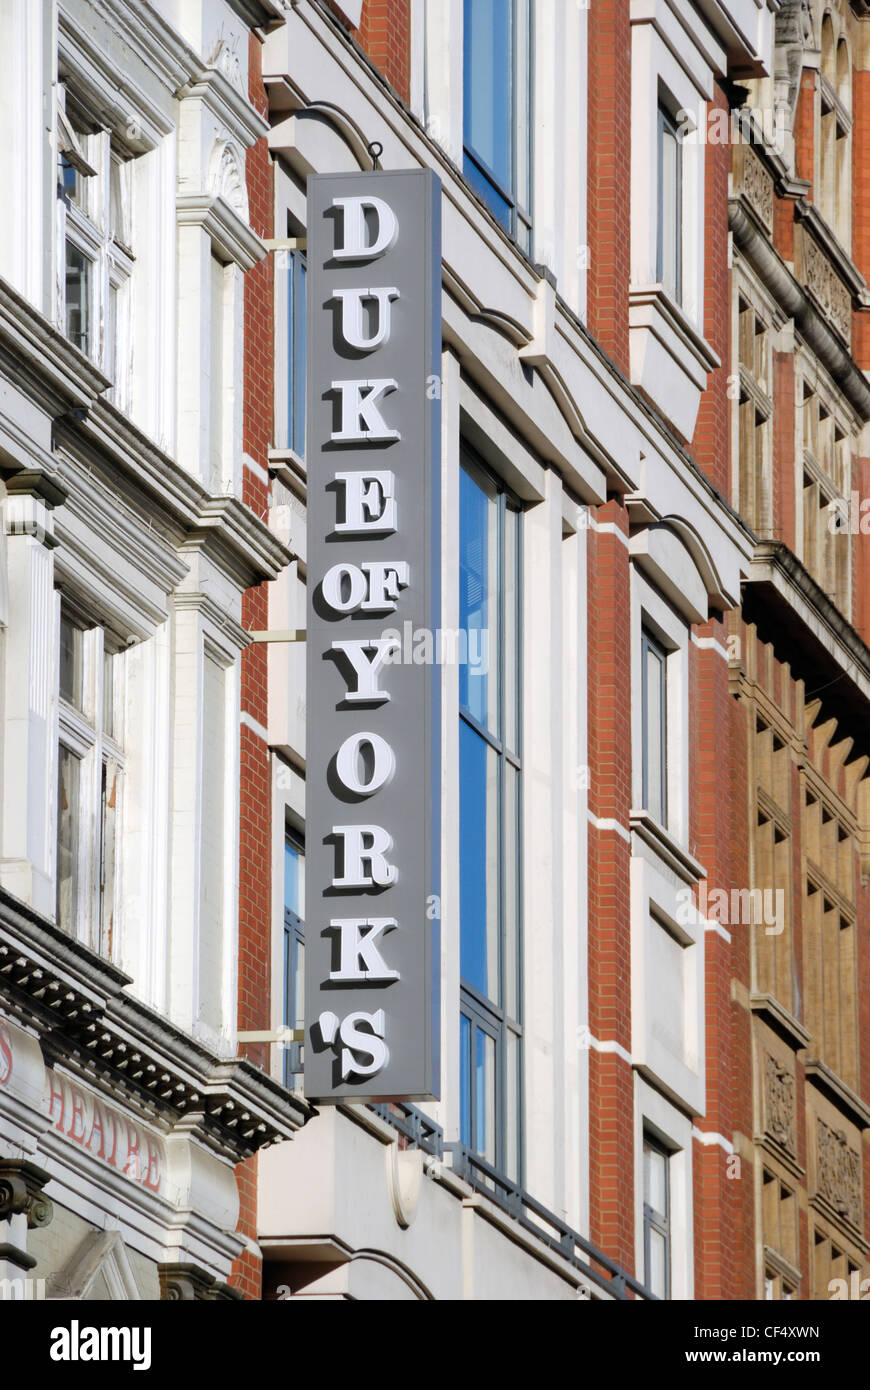 The Duke of York's Theatre in St Martin's Lane in London's West End. - Stock Image